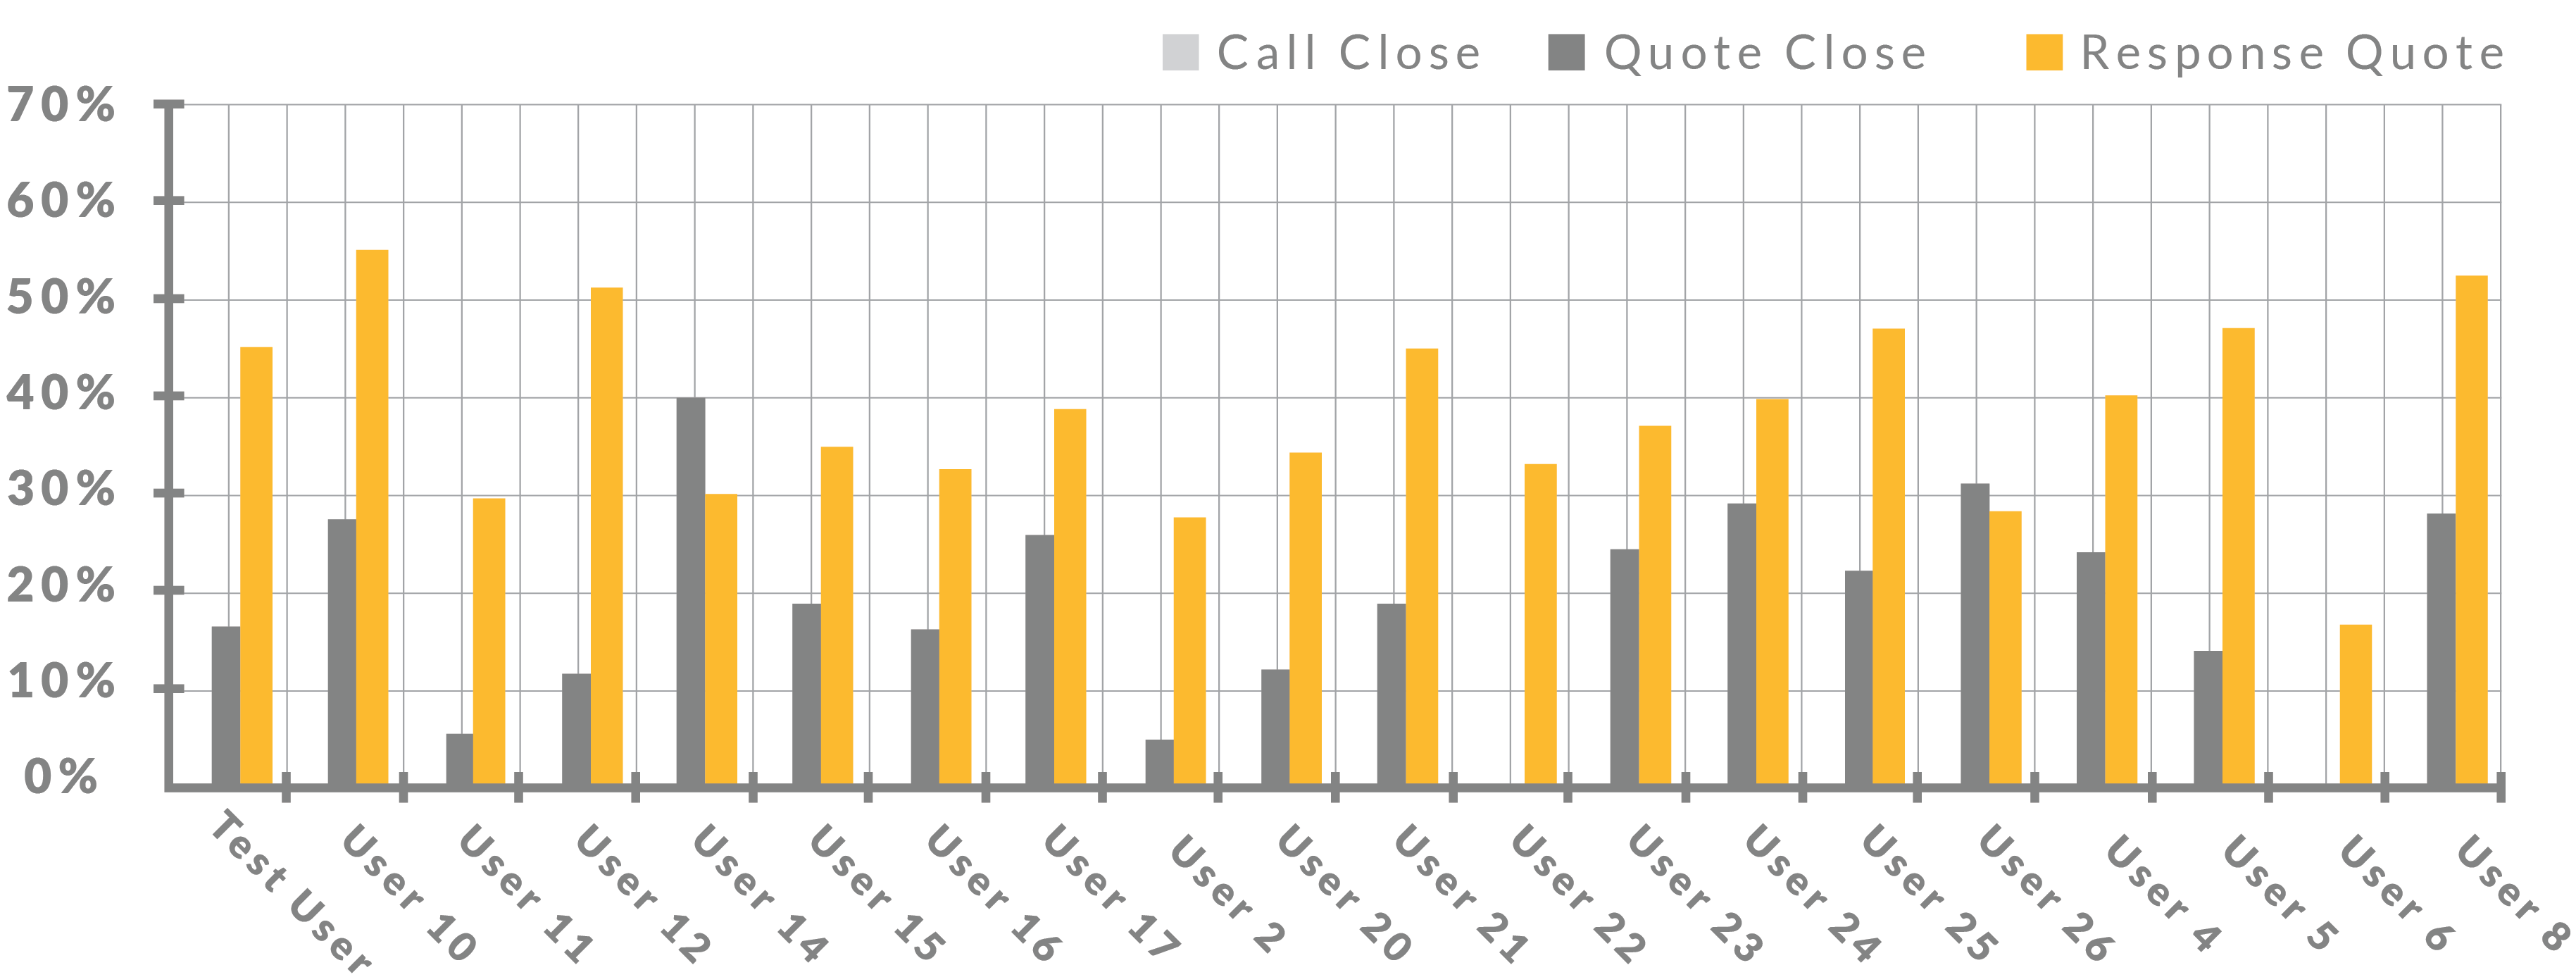 Inline CRM user close and quote rate reporting